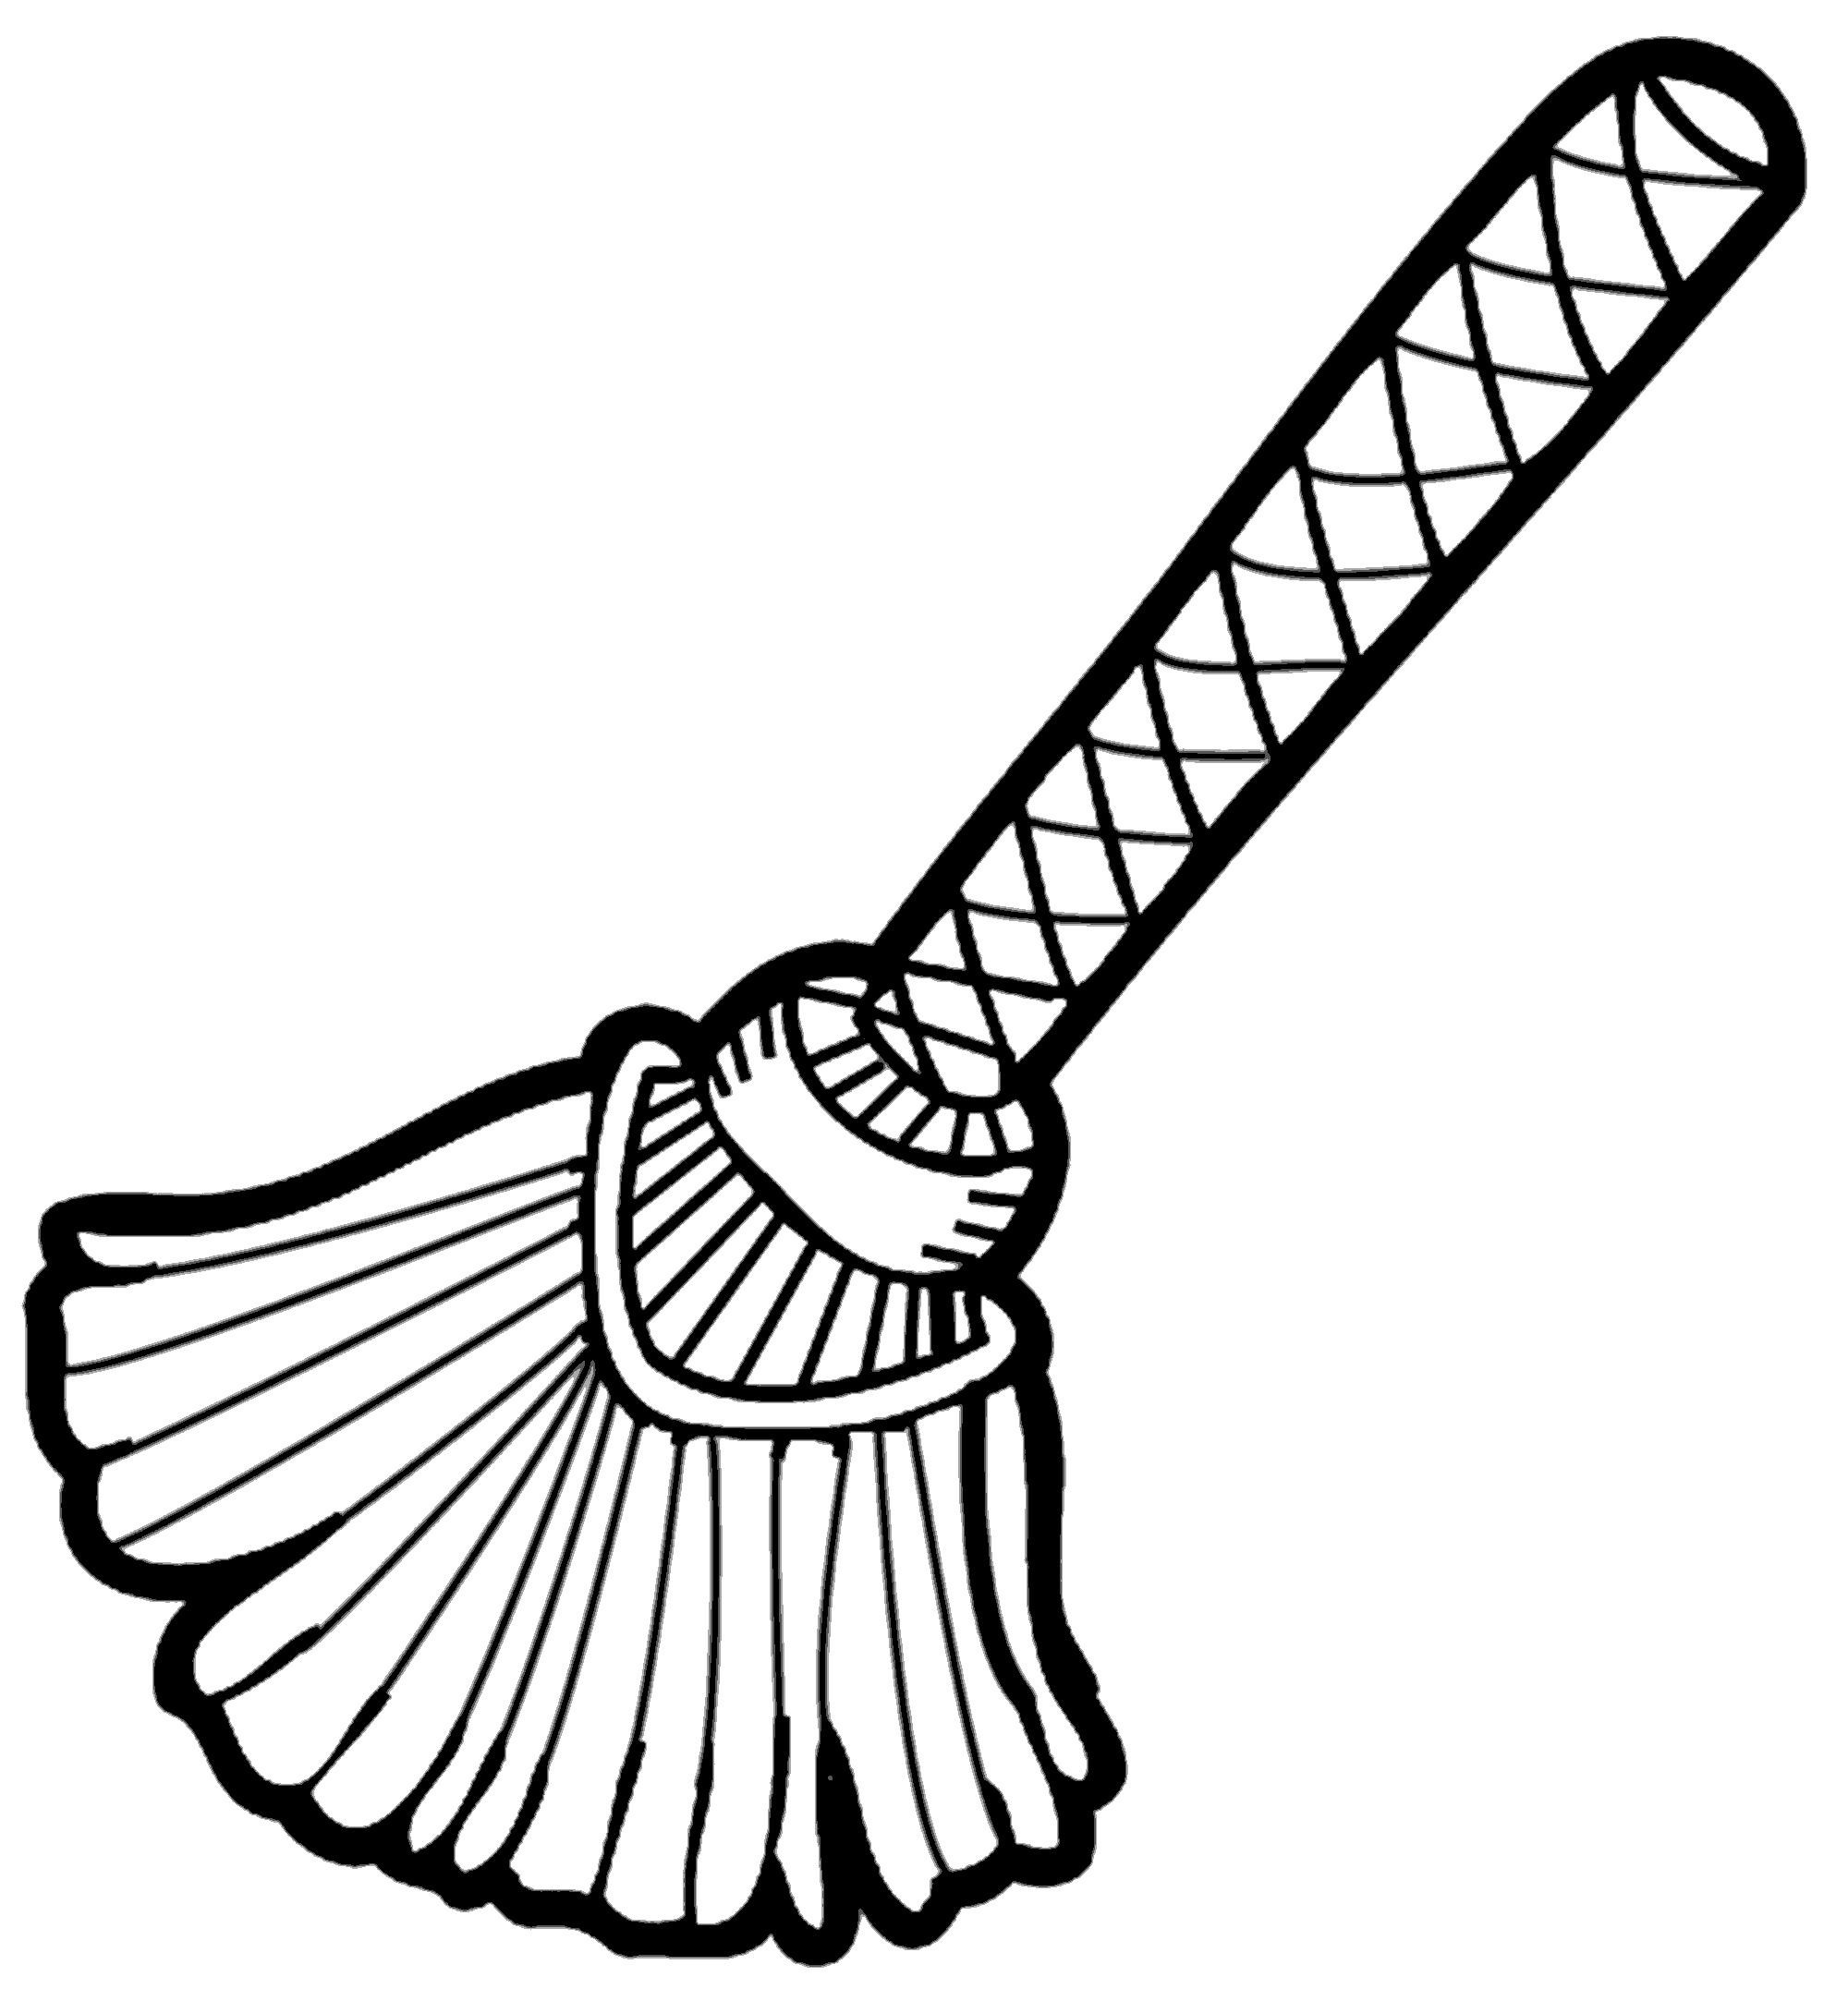 Broom clipart black and white. Letters